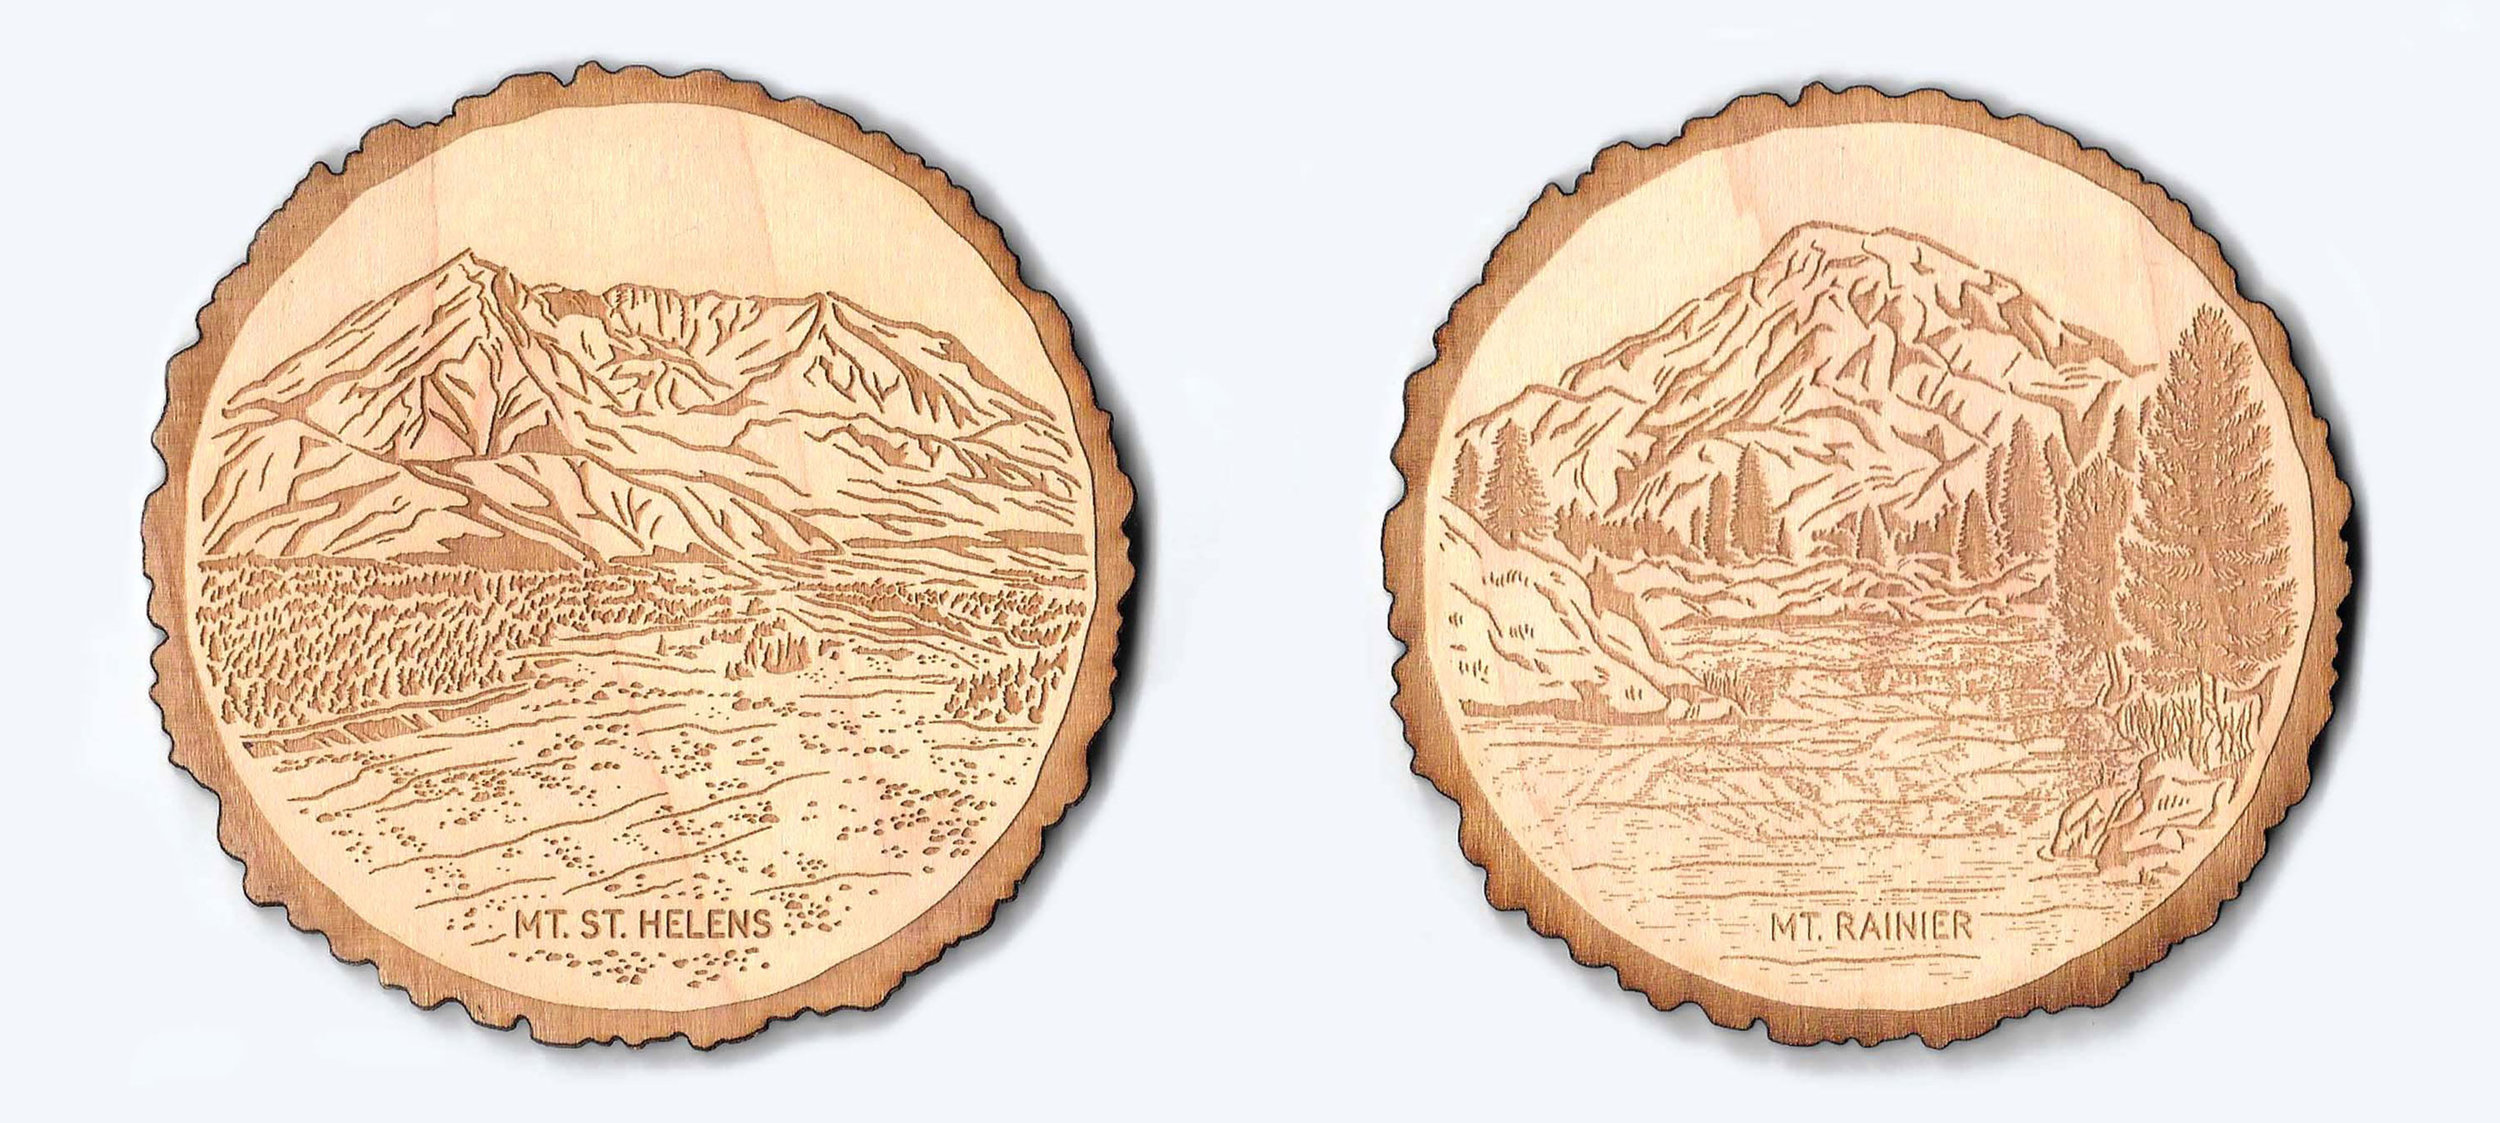 Pacific Northwest Coasters: Mt St Helens and Mt Rainier available  here